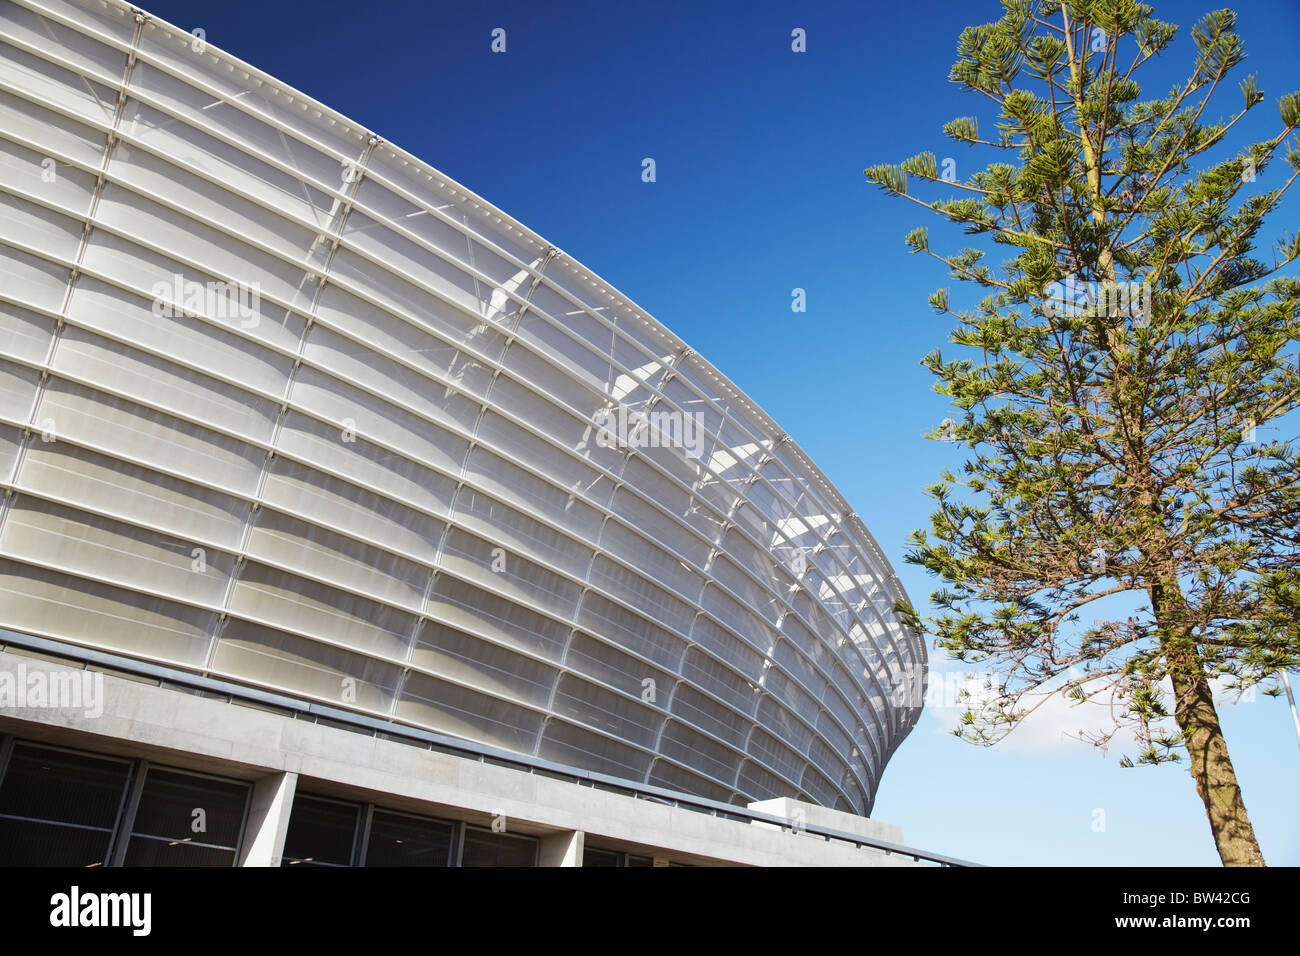 Green Point Stadium, Green Point, Cape Town, Western Cape, South Africa - Stock Image